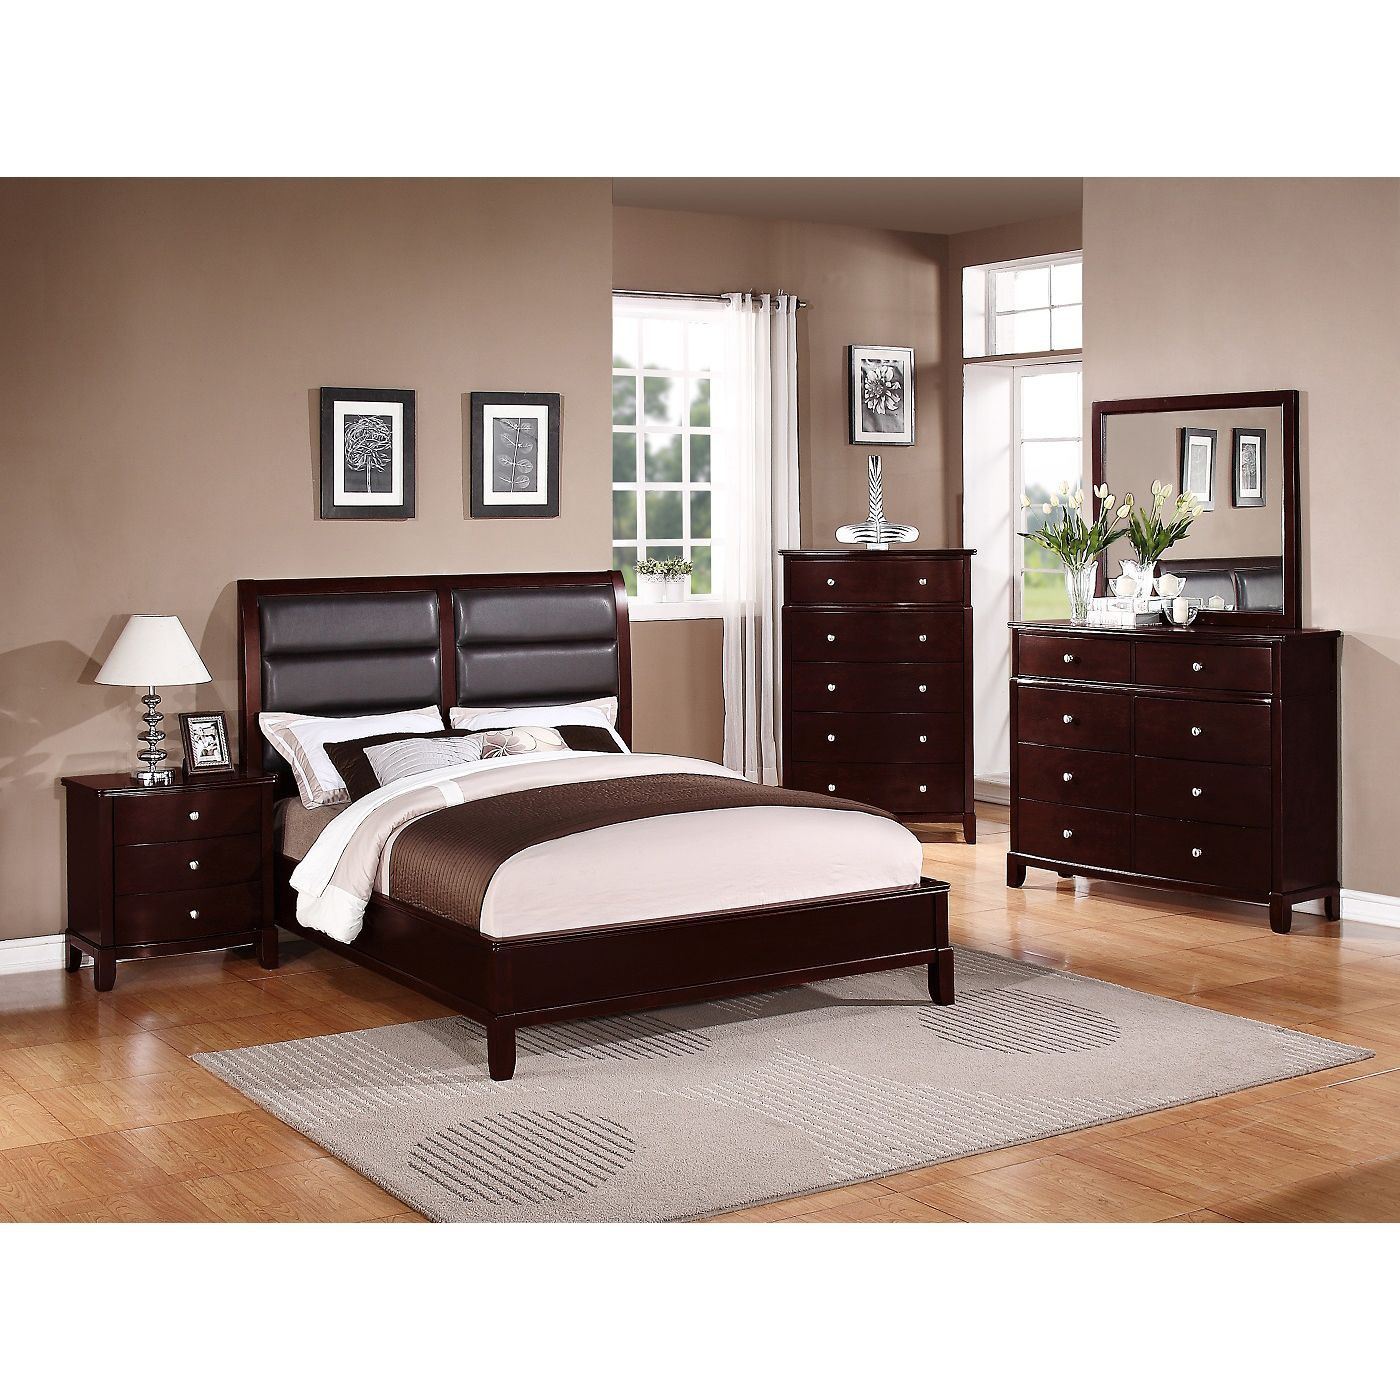 Let This Queensize Bedroom Set Bring A Sleek Contemporary Feel Custom Queen Size Bedroom Sets Inspiration